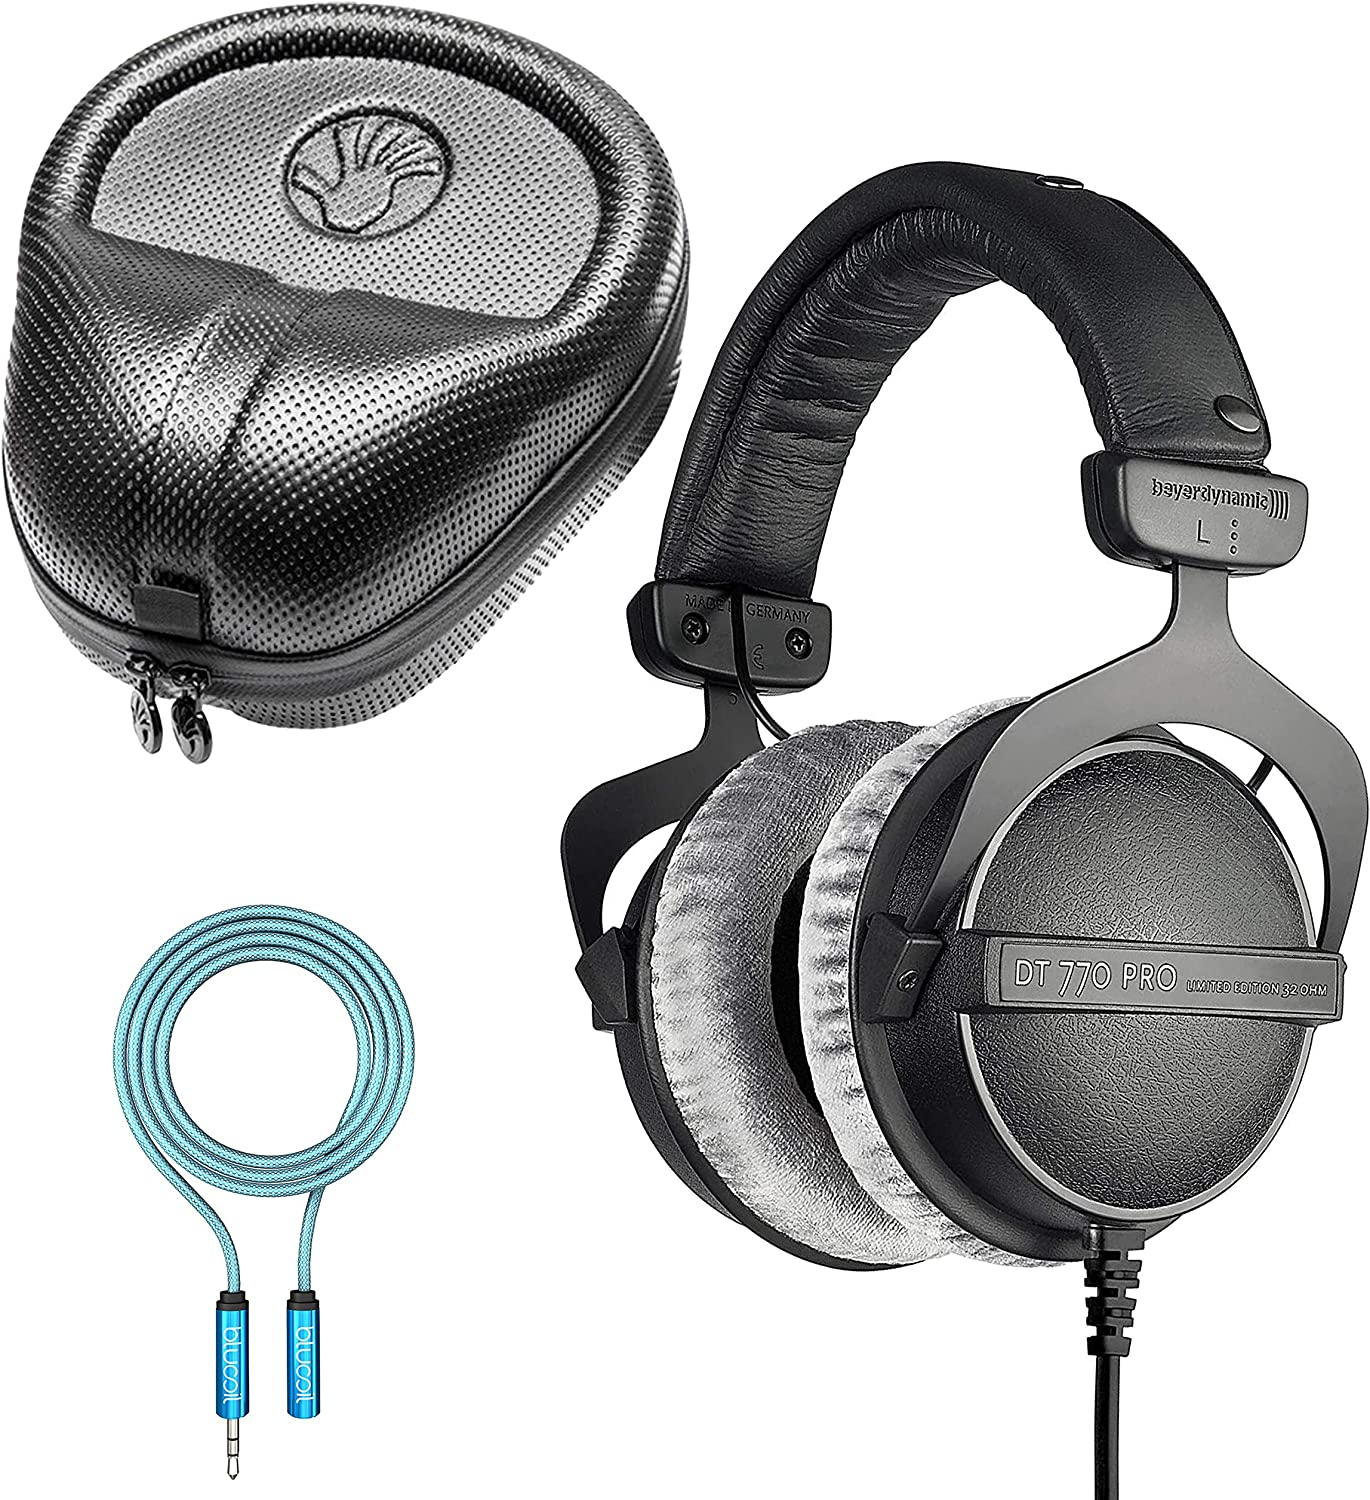 Beyerdynamic DT 770 PRO 32 Ohm Closed Back Headphones for Smartphones, Laptops, Computers Bundle with Full-Sized HardBody Pro Headphone Case, and Blucoil 6-FT Headphone Extension Cable (3.5mm)